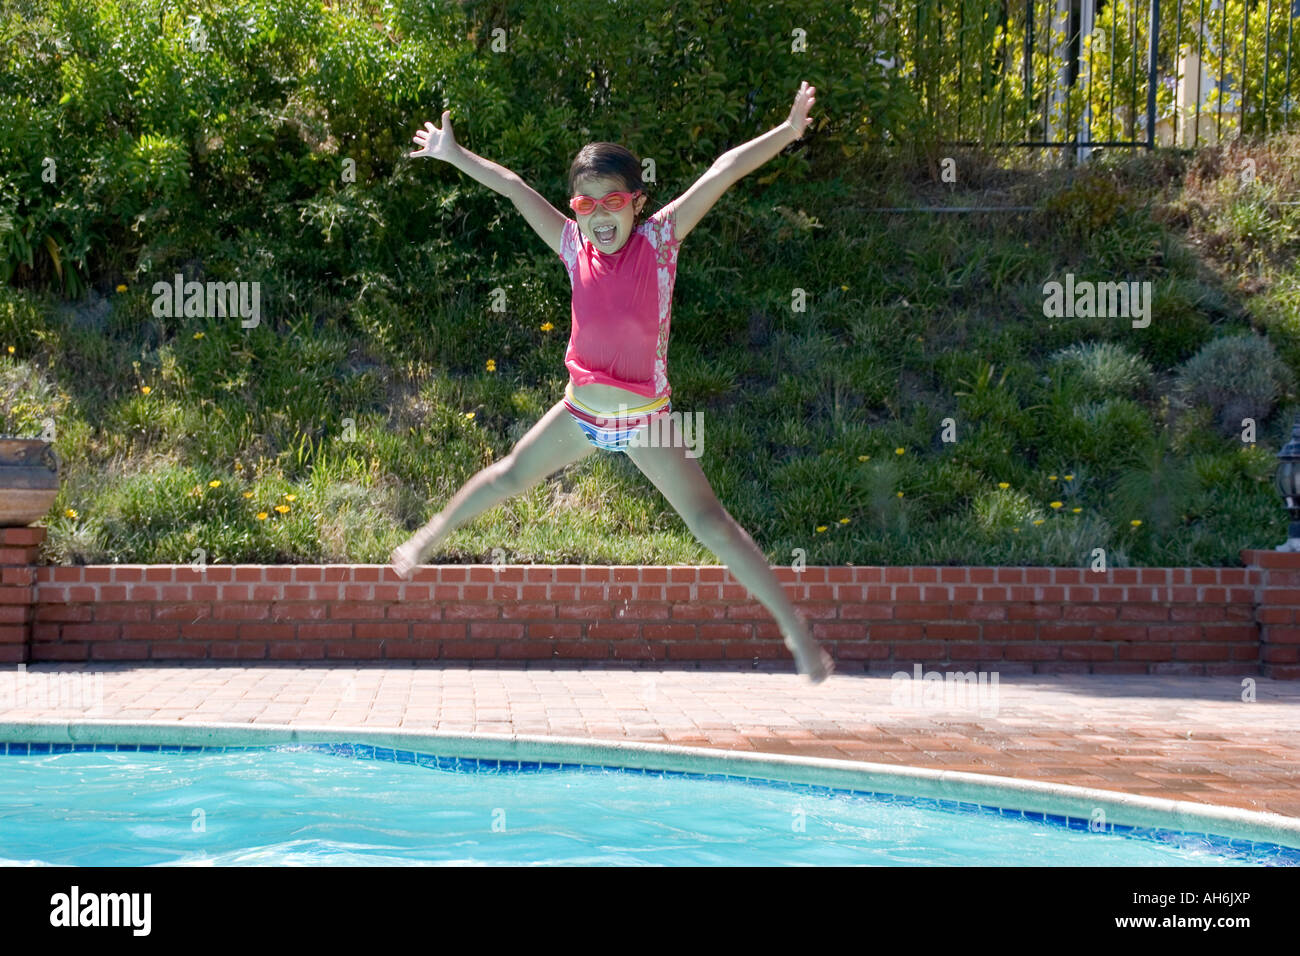 Jump Into Pool Images Galleries With A Bite